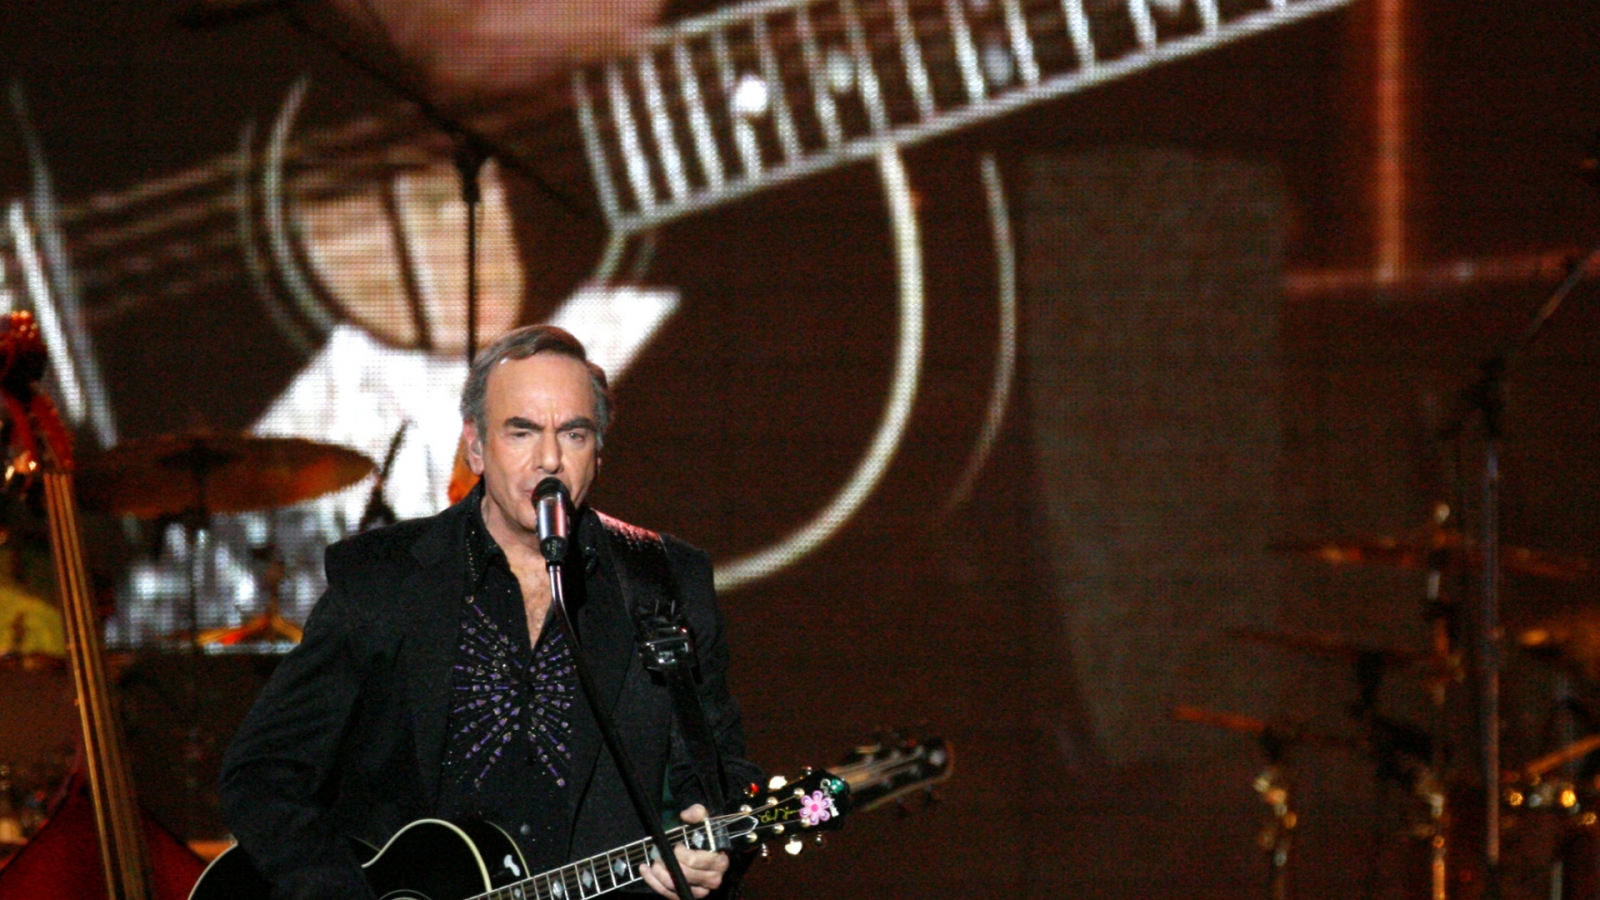 neil-diamond-retires-from-touring-after-parkinsons-diagnosis